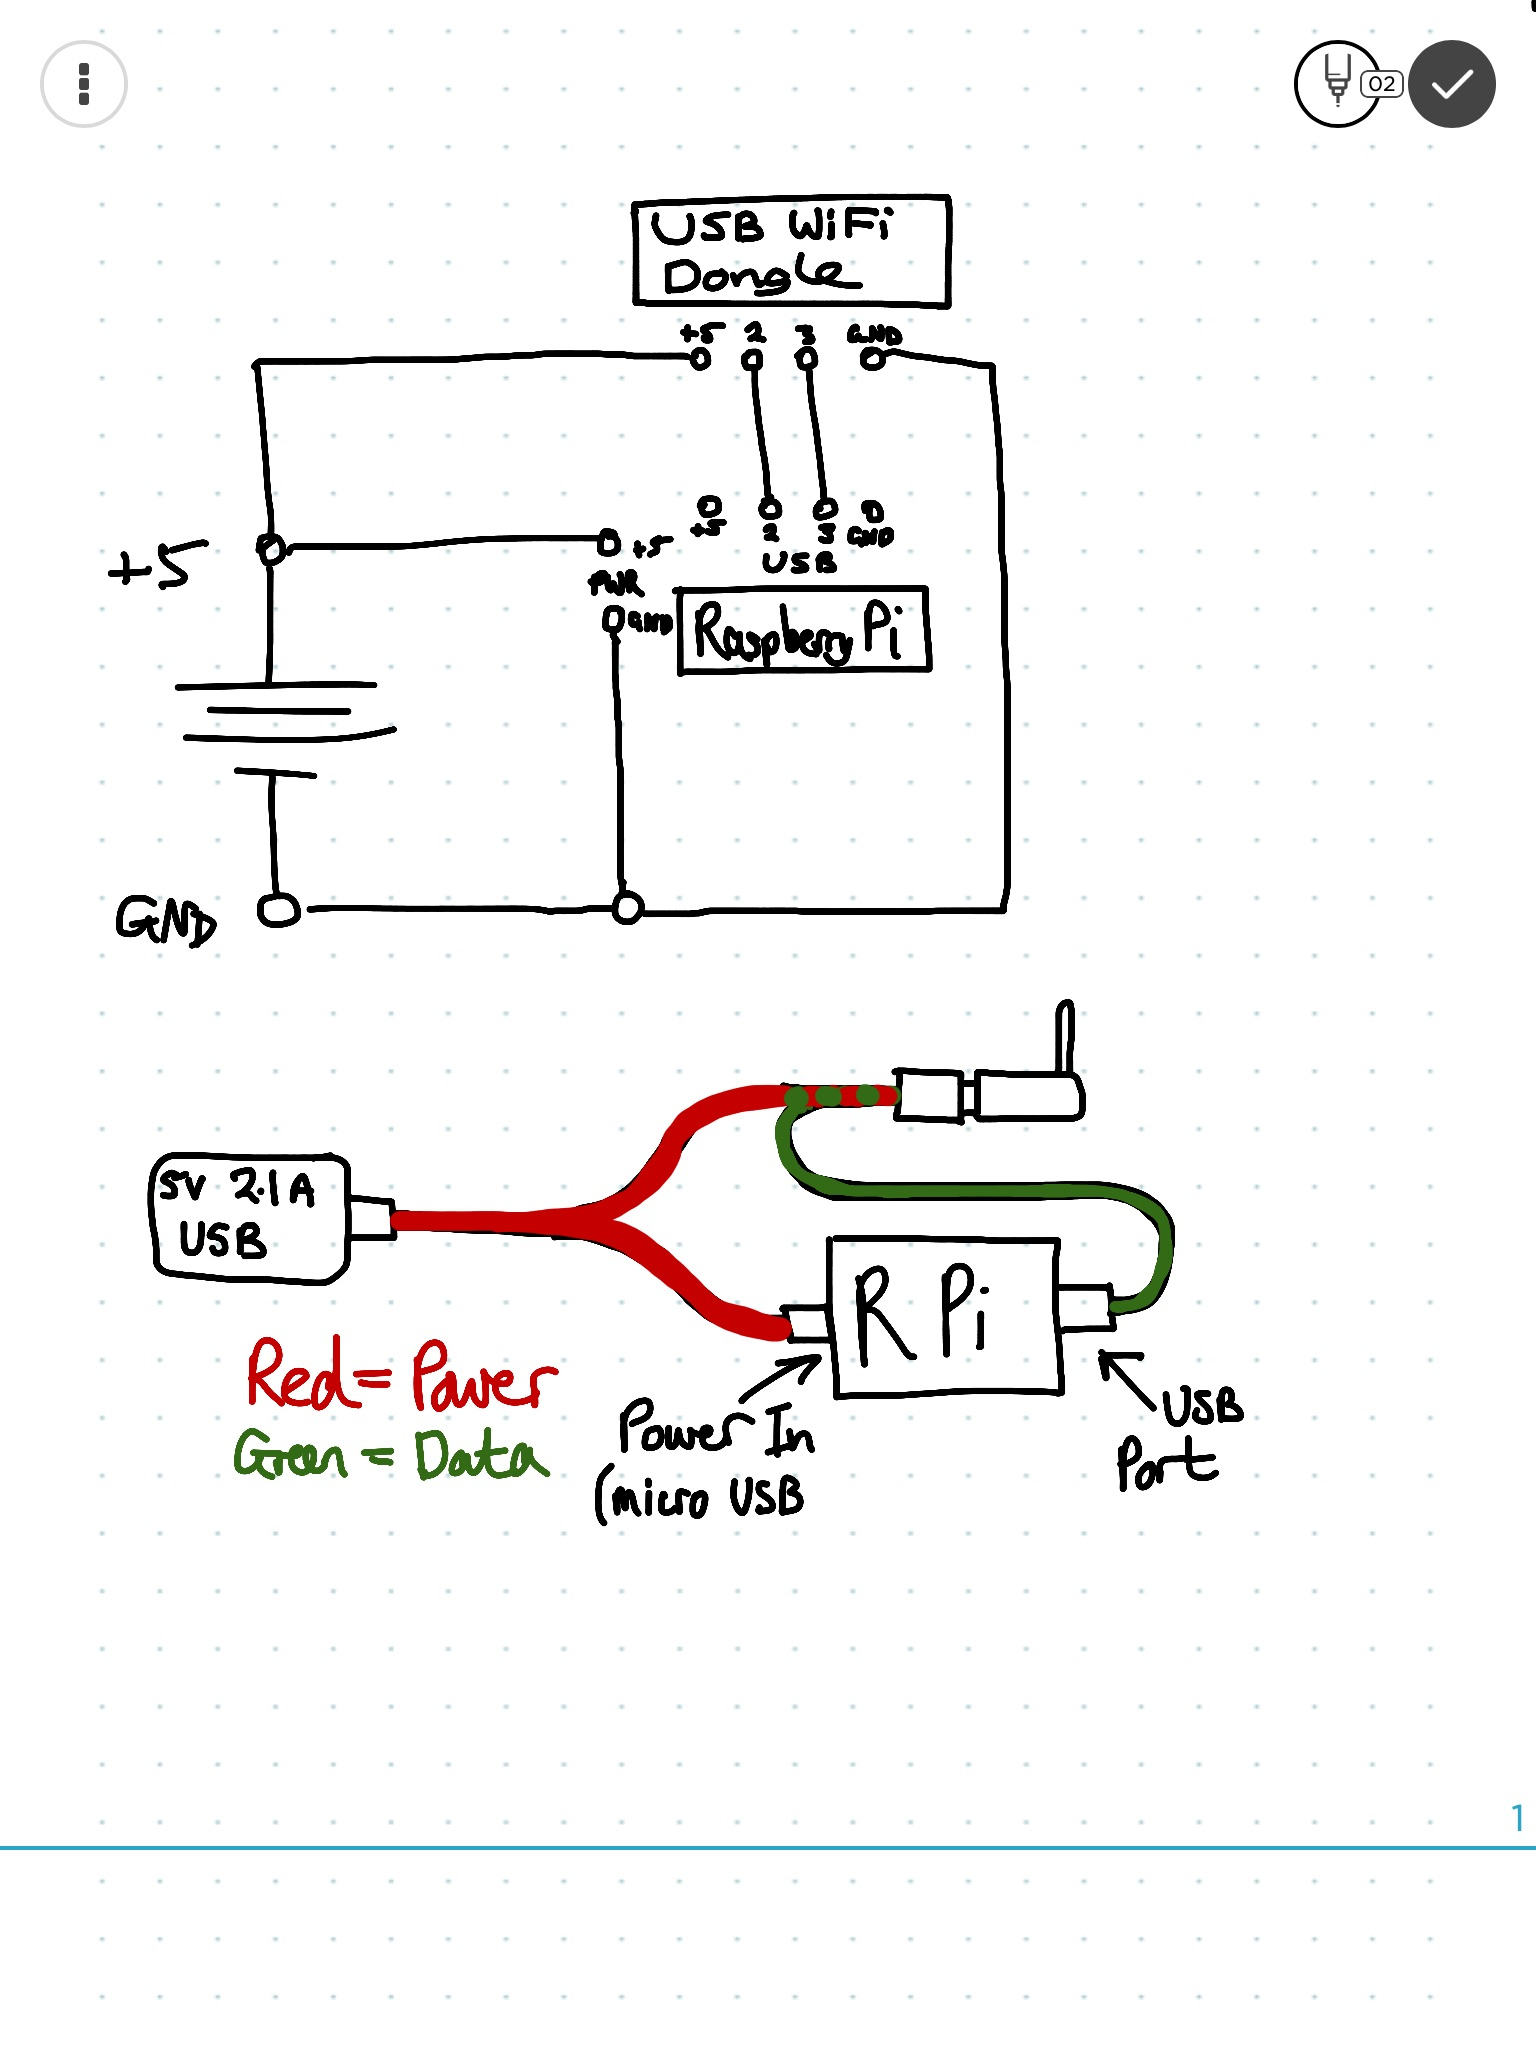 Wiring Usb Hack | Wiring Diagram - 6 Prong Usb Charger Wiring Diagram